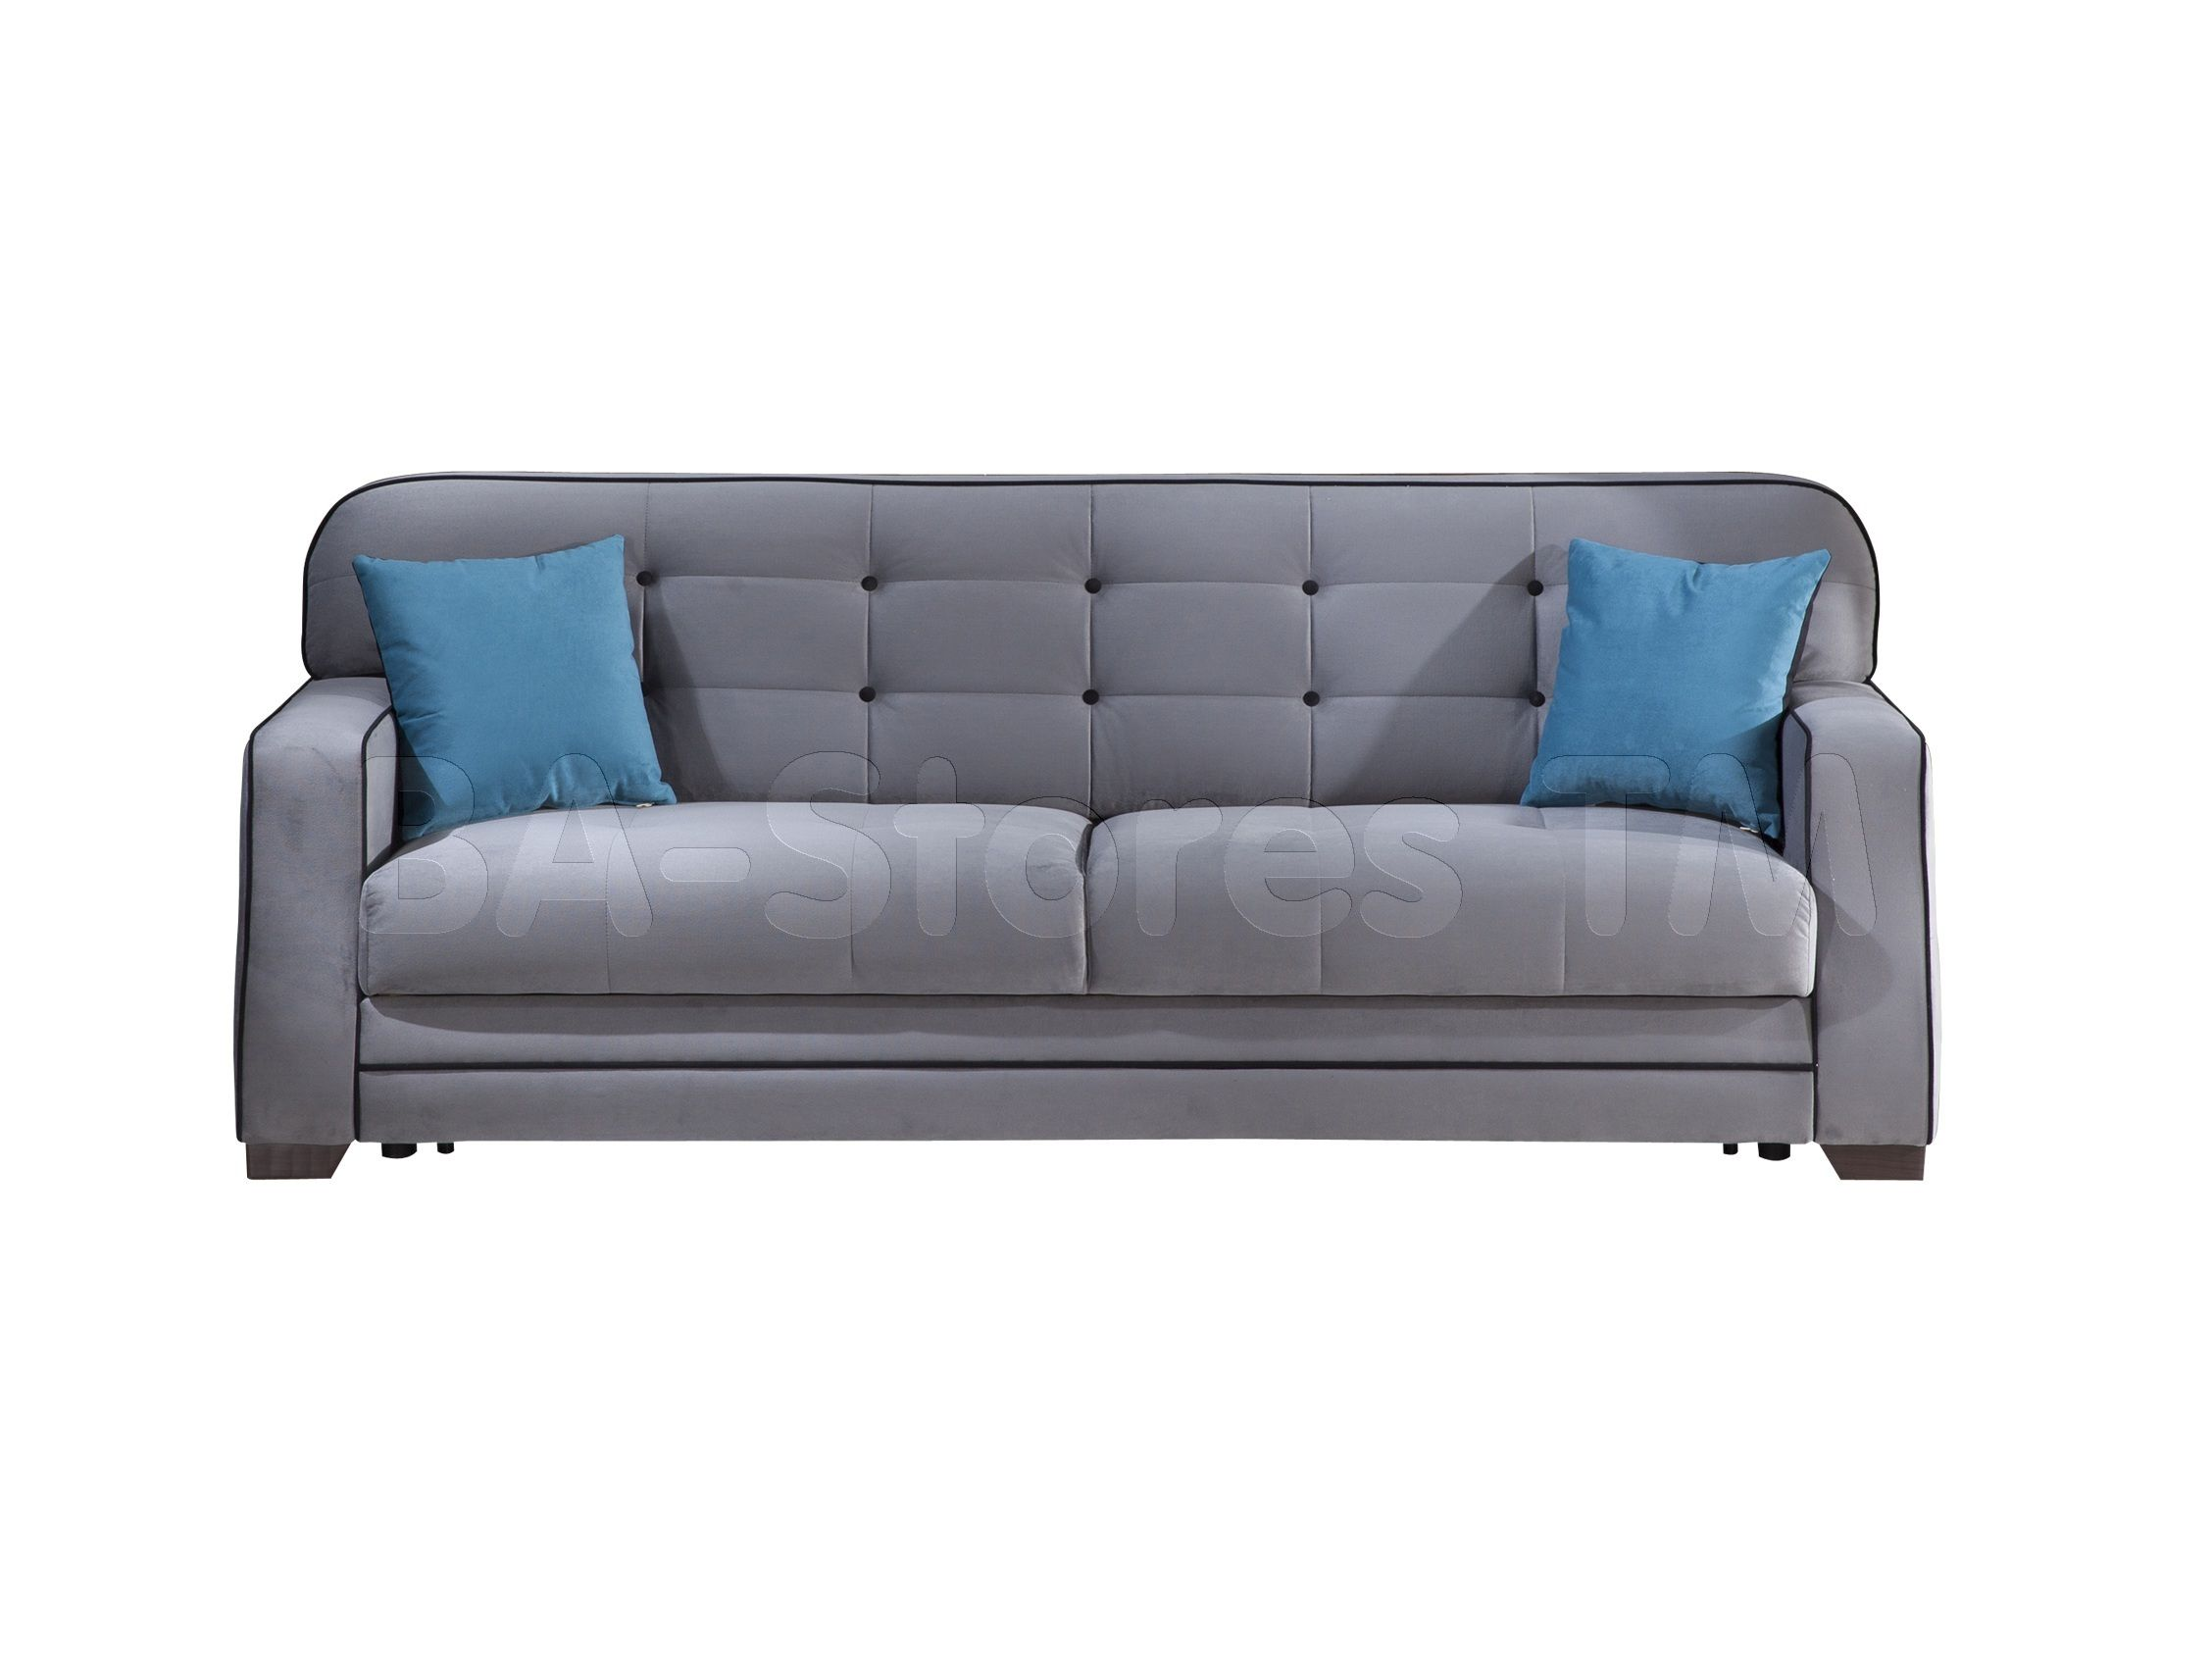 Superb Fluo Sofa Sleeper In Koala Gray By Istikbal Sofa Beds By Andrewgaddart Wooden Chair Designs For Living Room Andrewgaddartcom